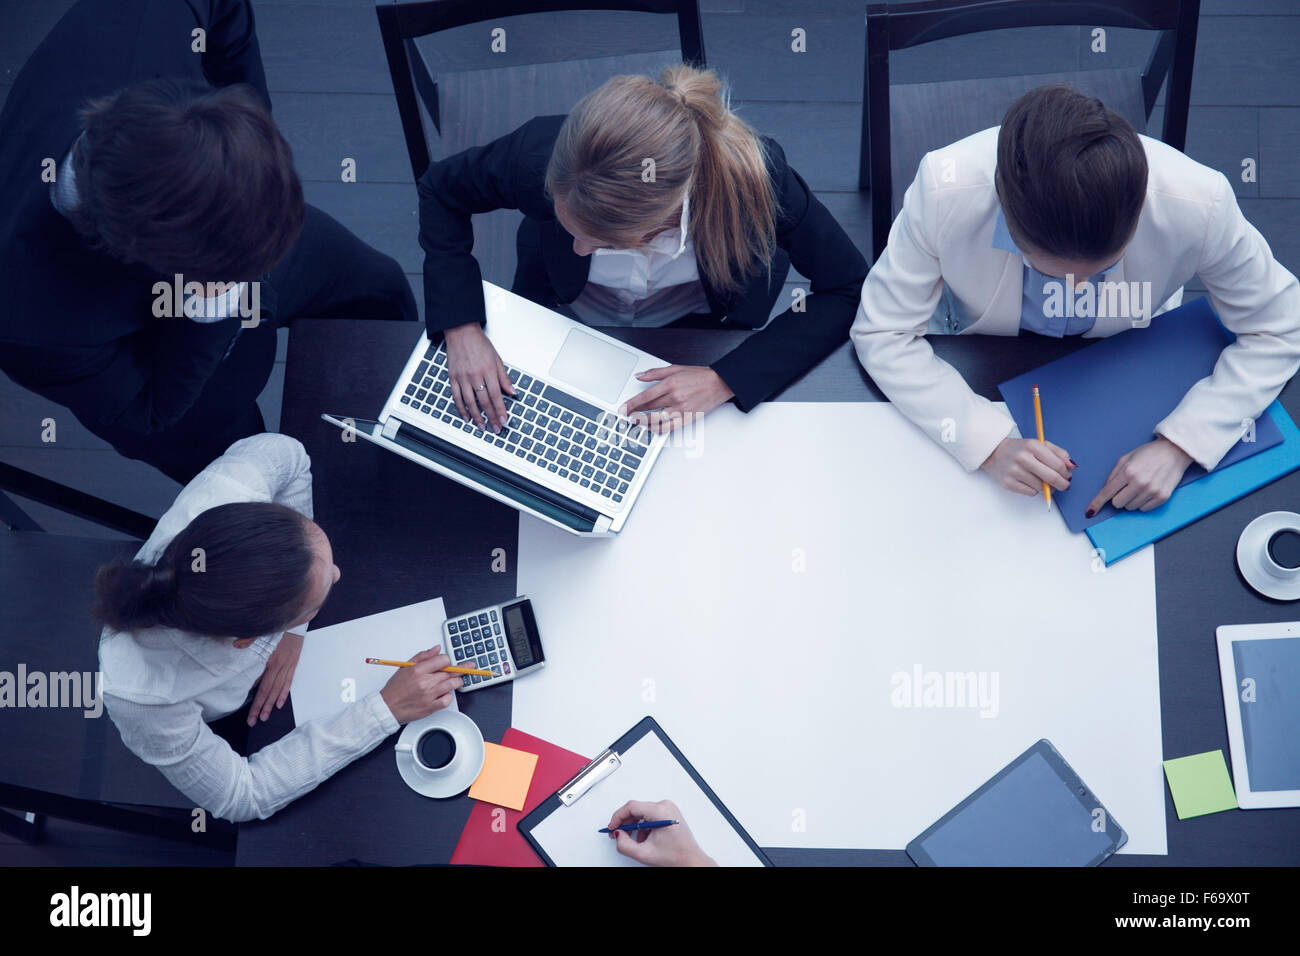 Business workplace with people, cup of coffee, digital tablet, smartphone, papers and various office objects on - Stock Image